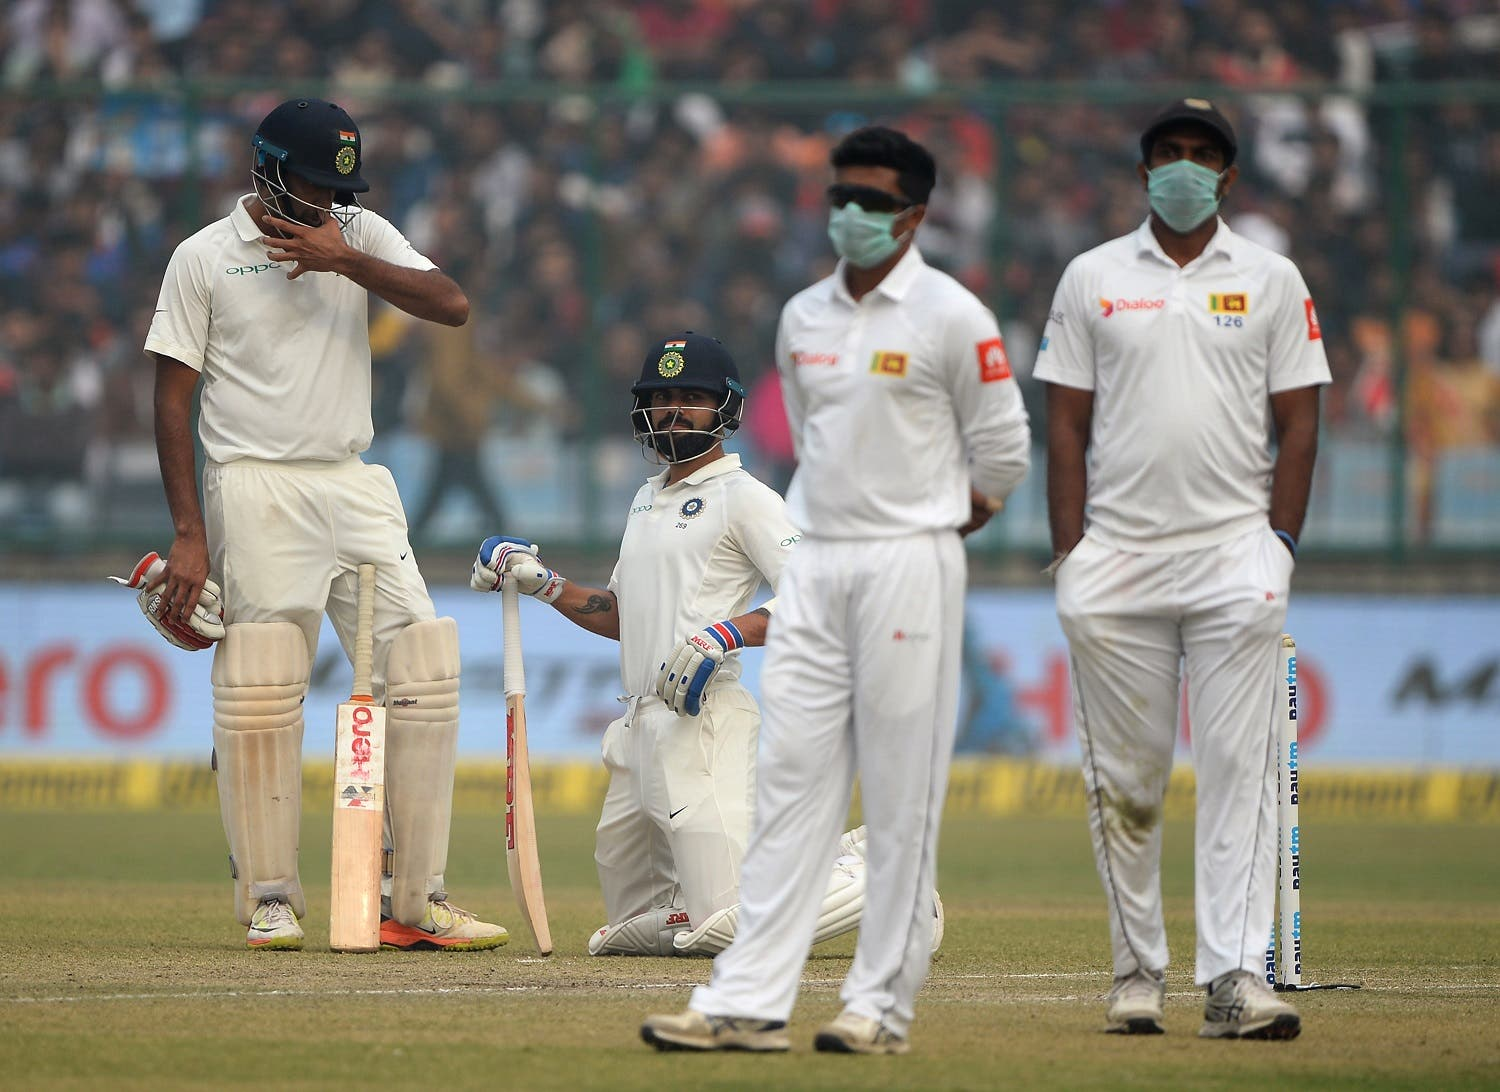 Sri Lanka cricket players wearing masks in an attempt to protect themselves from air pollution as Indian captain Virat Kohli (2L) and teammate R. Ashwin look on during the second day of the Test match in New Delhi. (AFP)